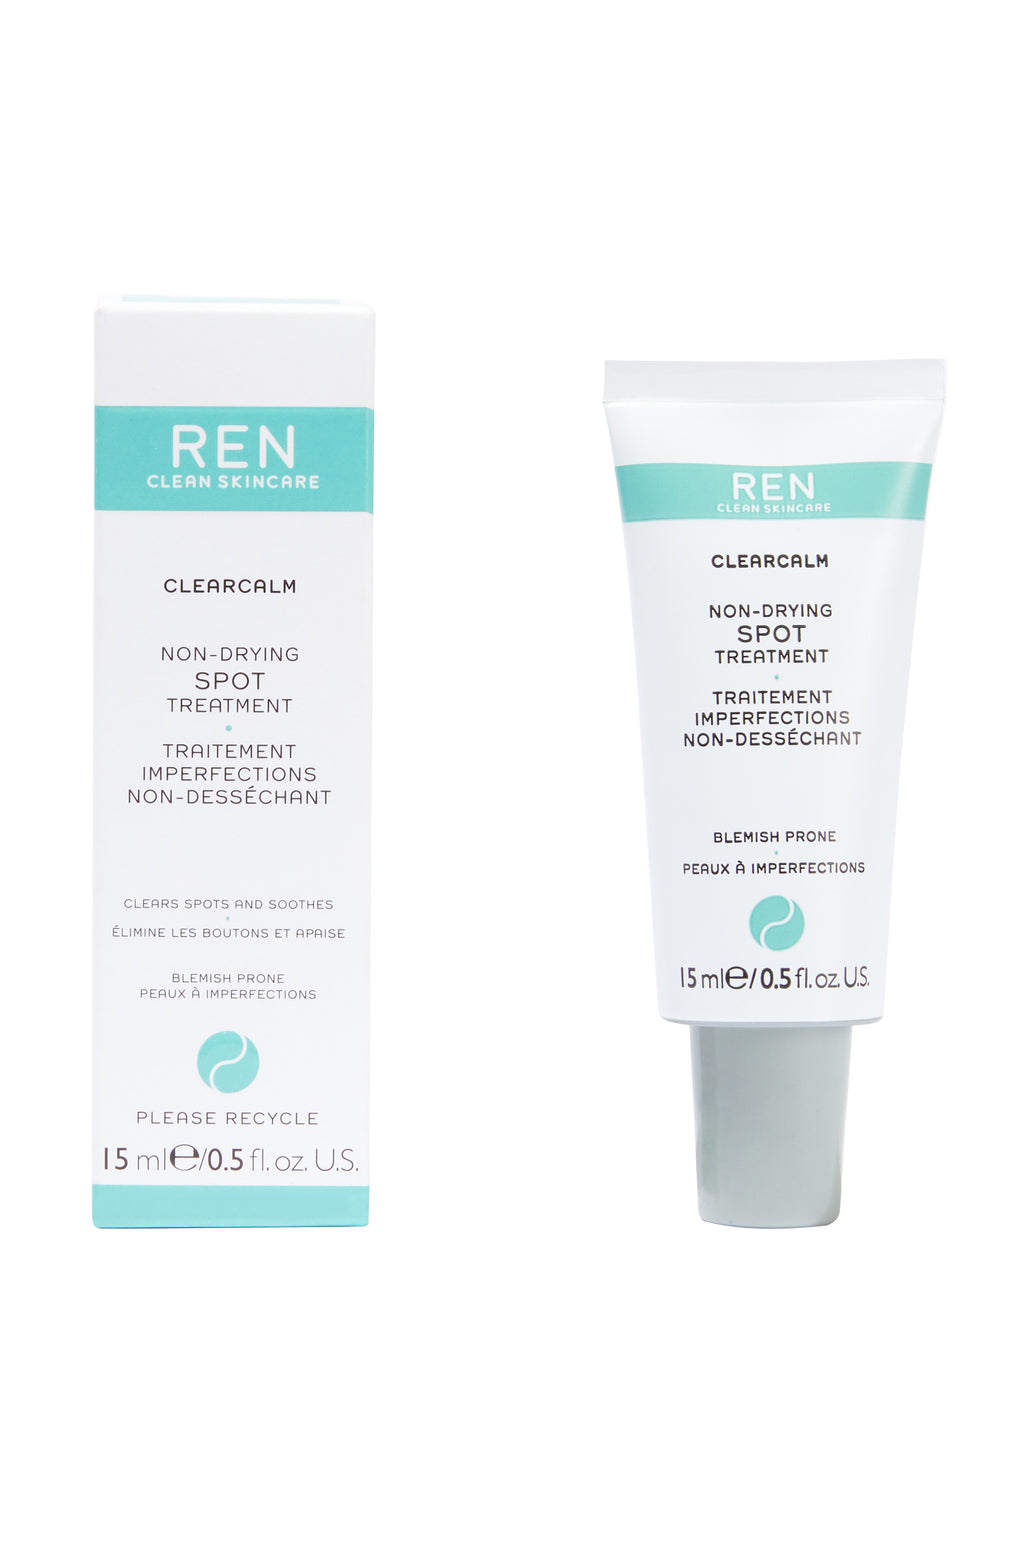 Clearcalm 3 Non-Drying Spot Treatment